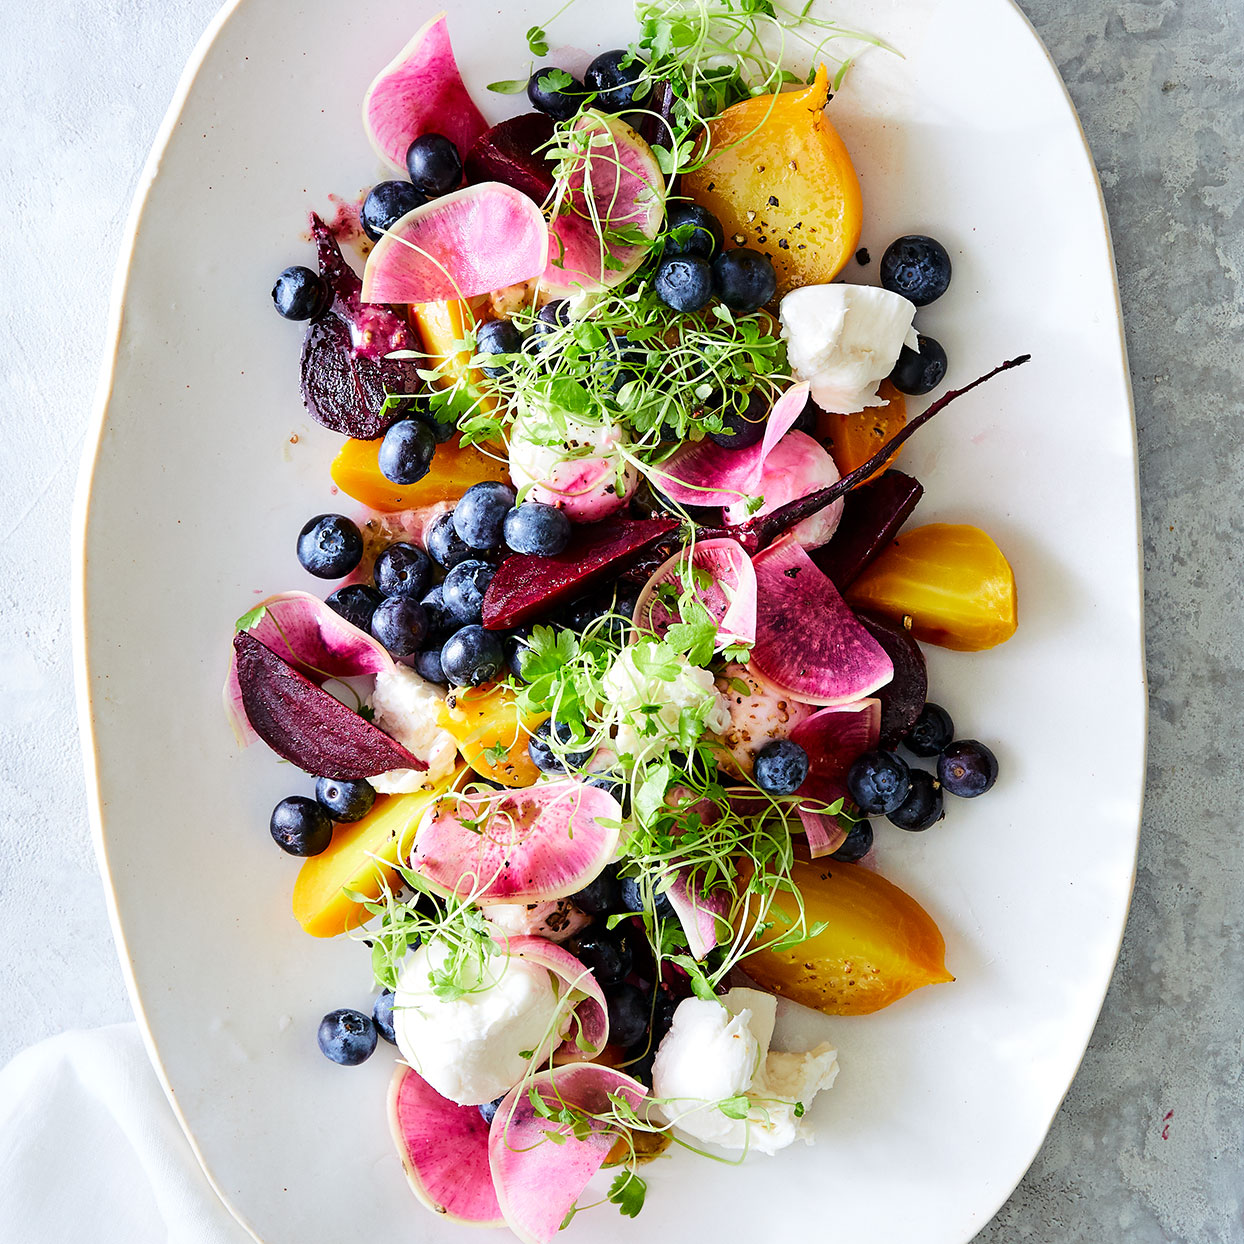 Roasted Beet & Blueberry Salad